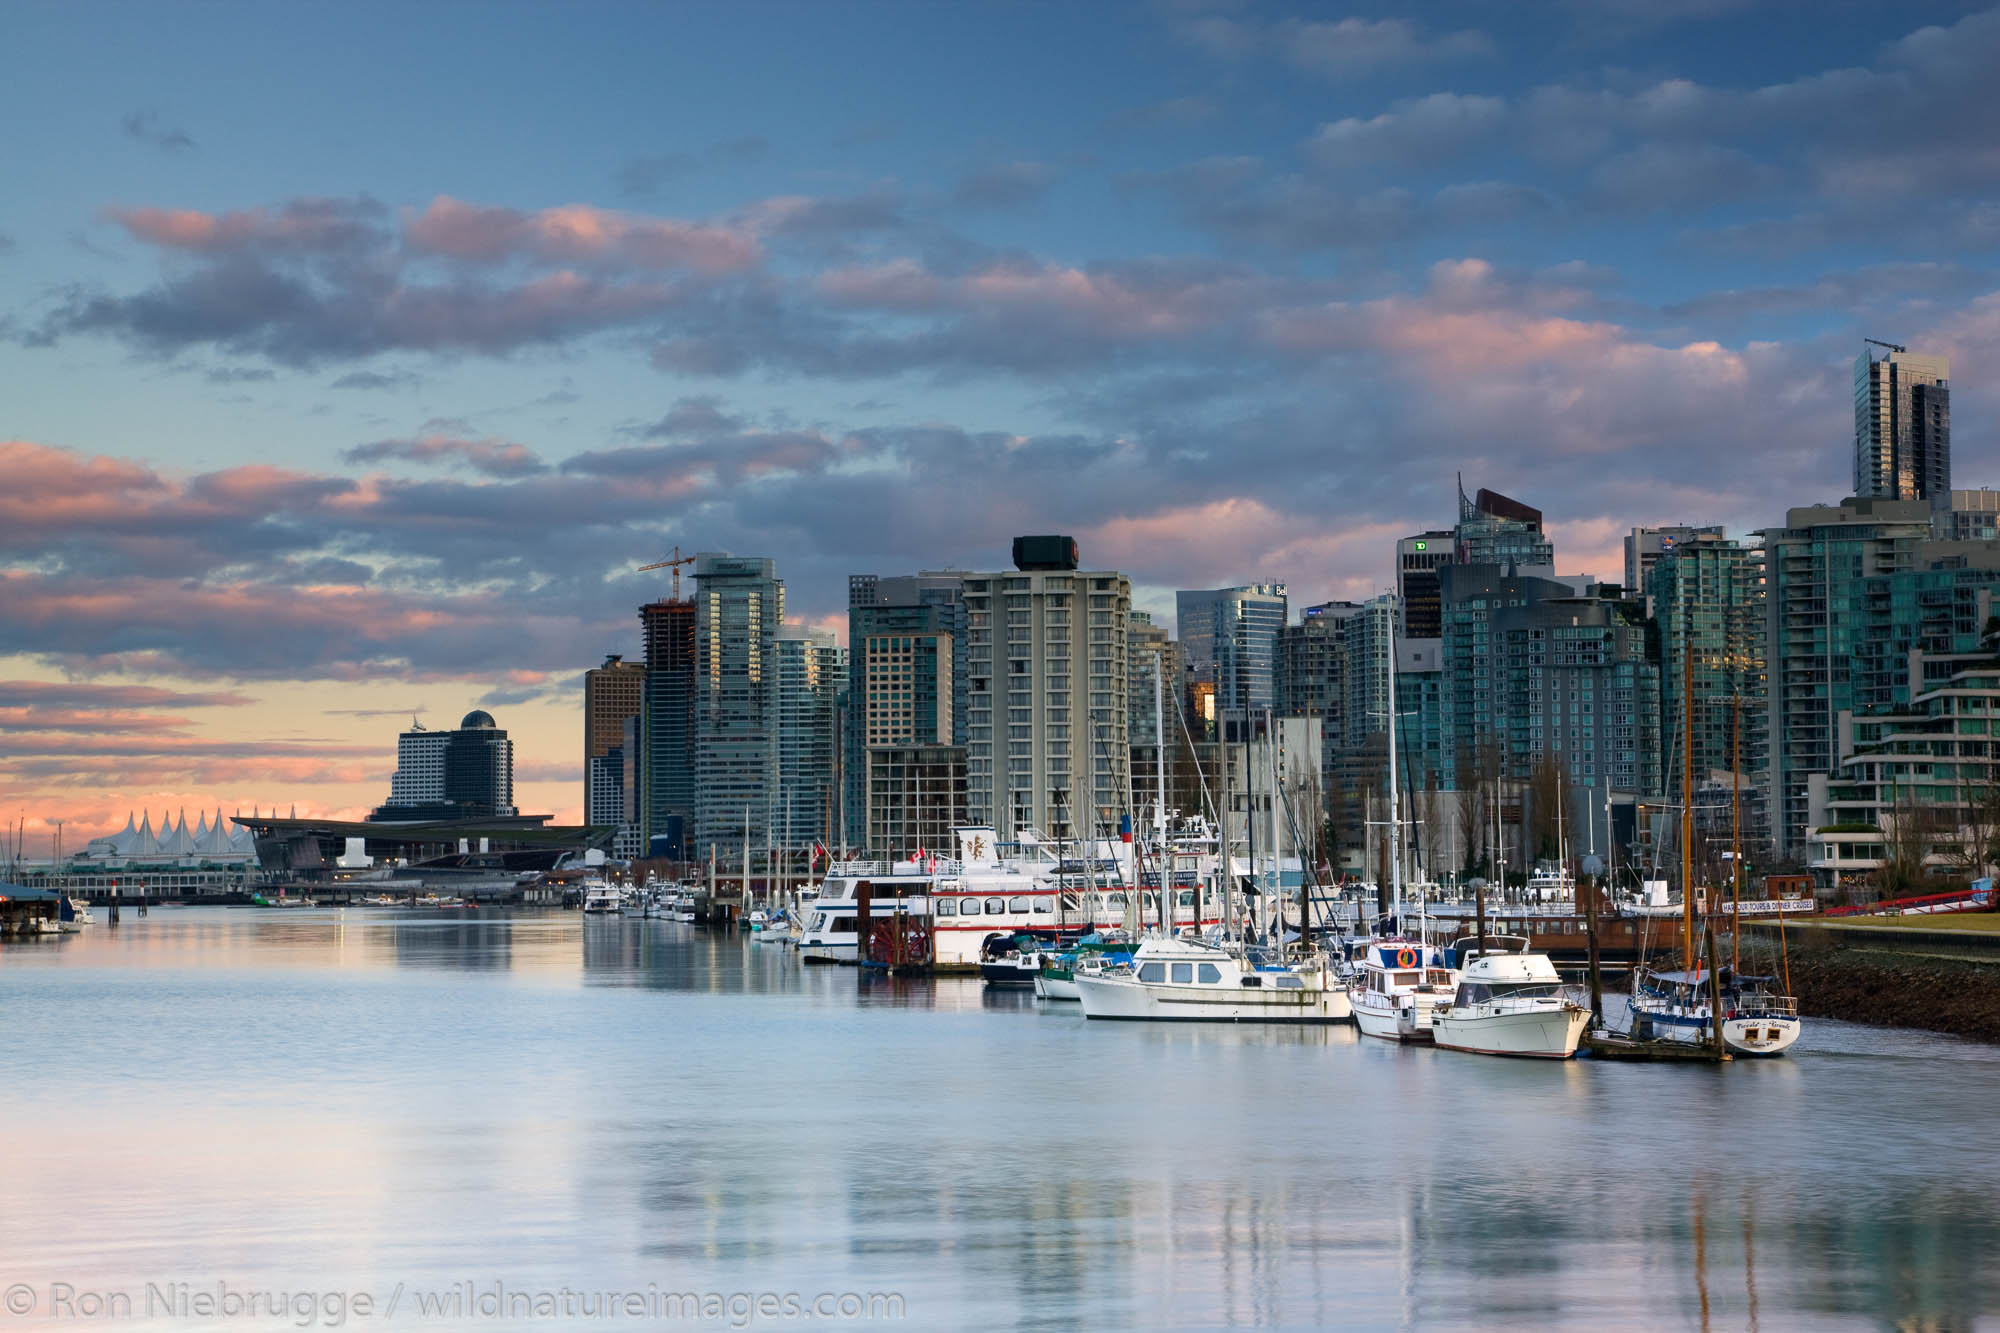 The city skyline of Vancouver, host of the 2010 Winter Olympics, British Columbia, Canada.